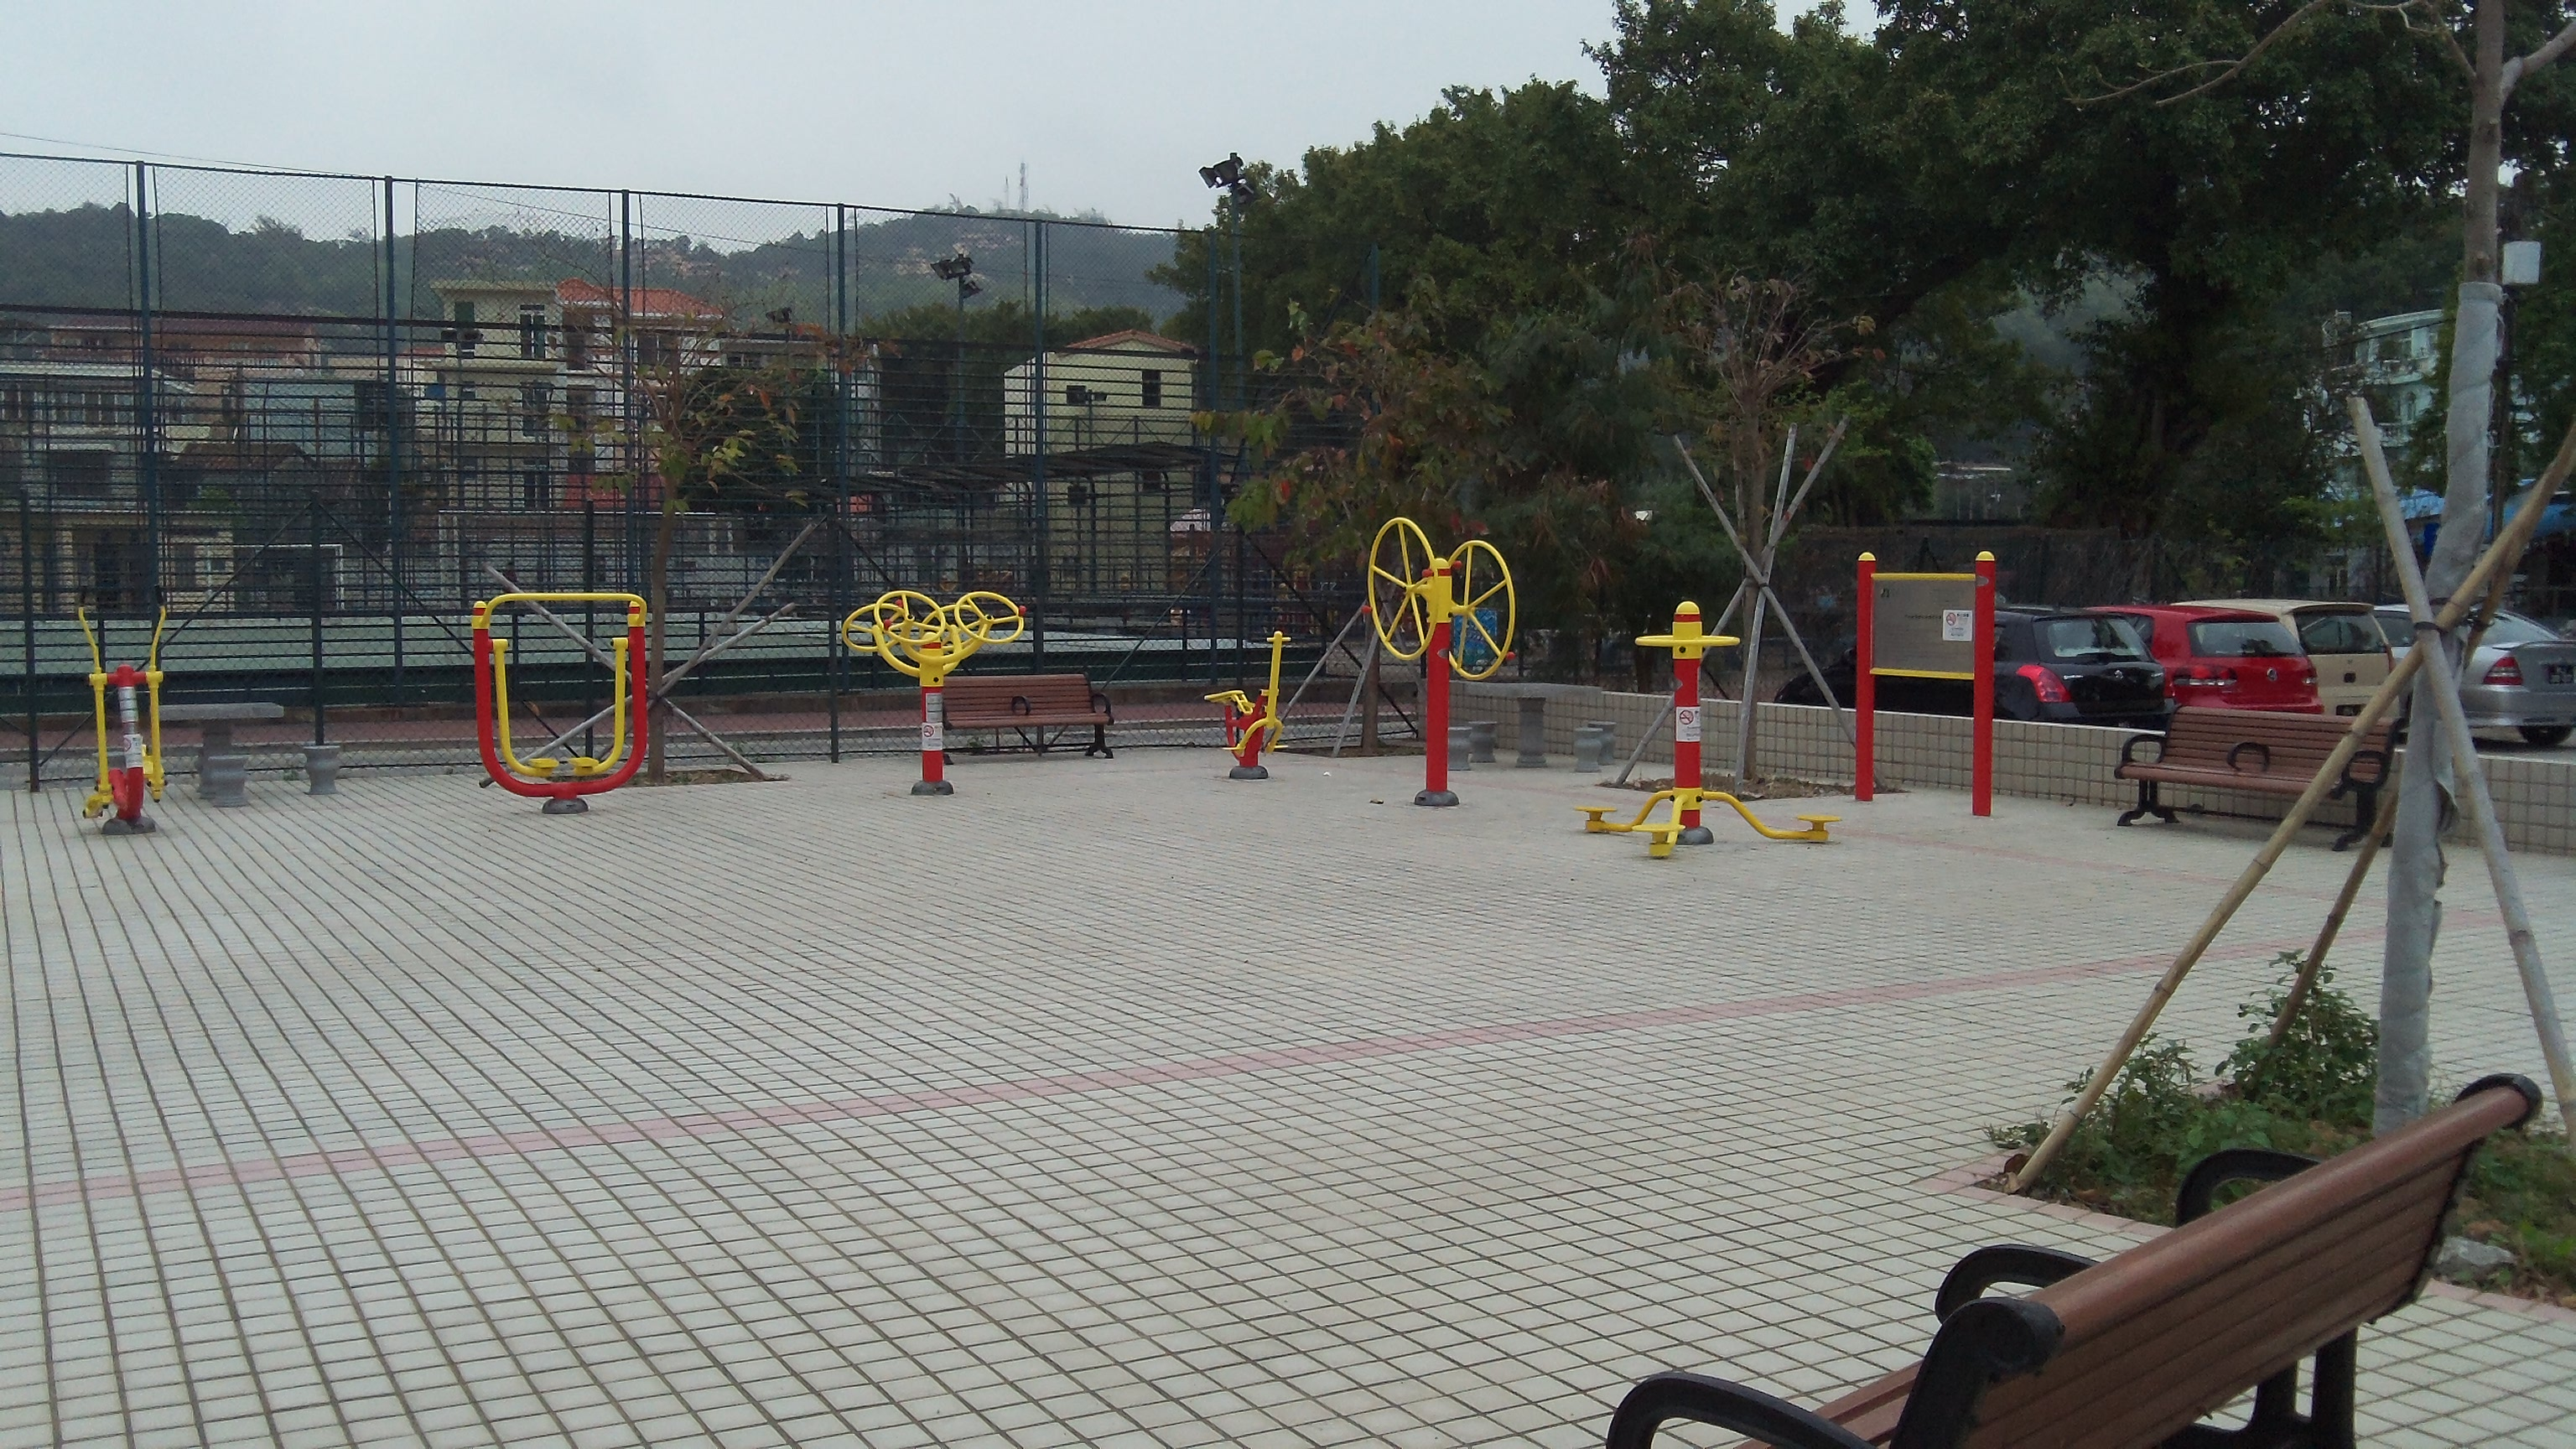 Outdoor gym, Macau